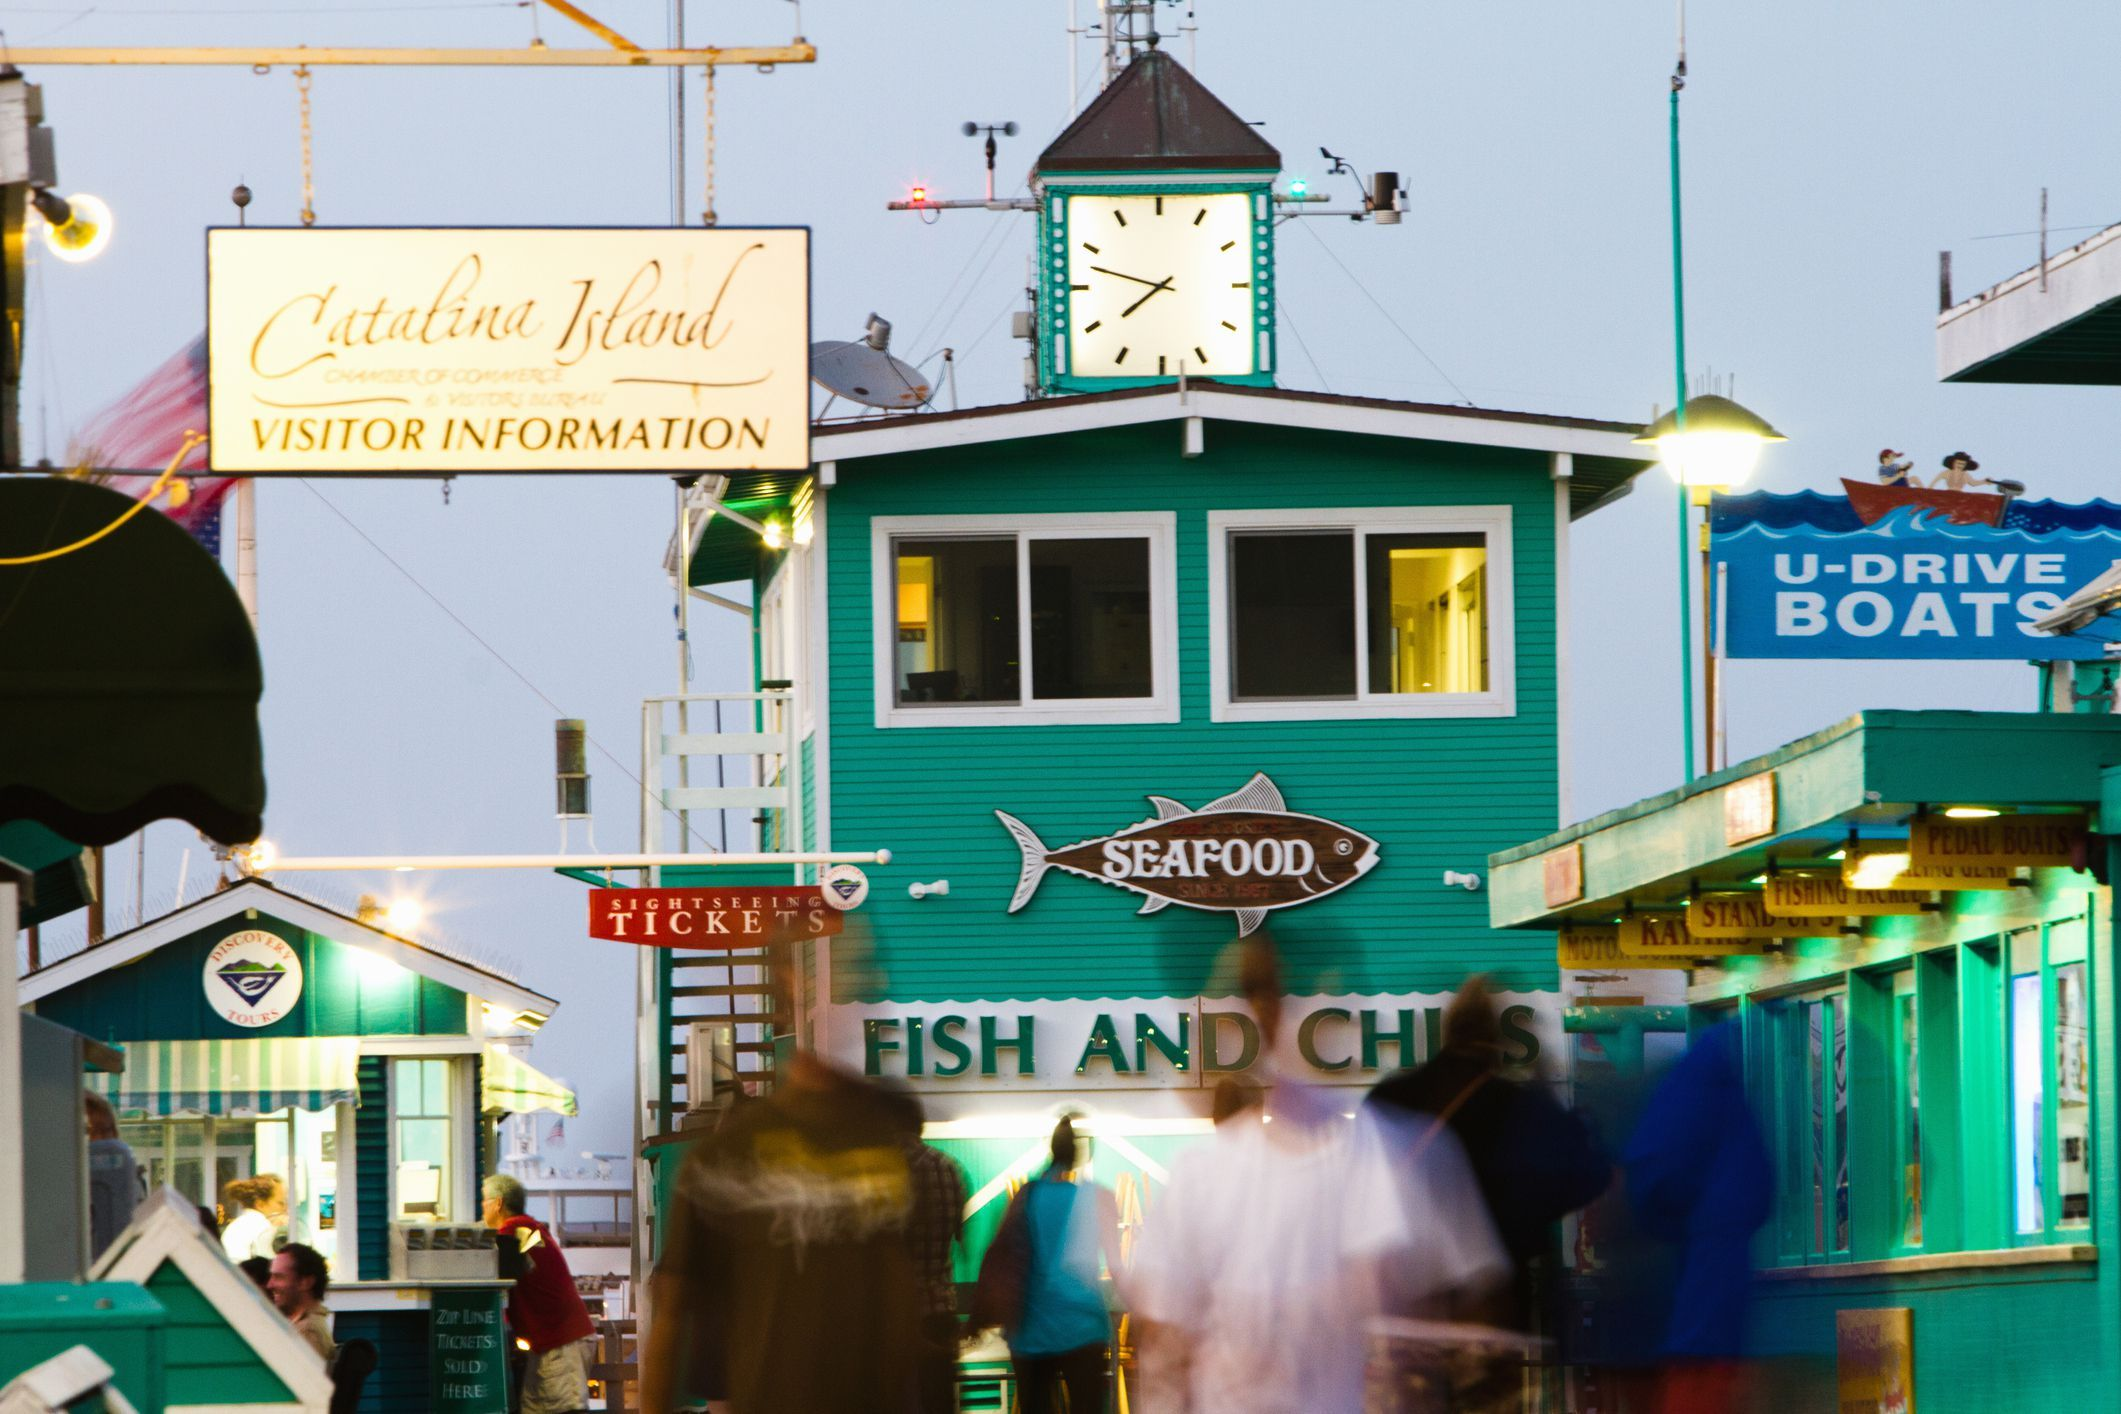 Things to Do with Kids on Catalina Island Kid friendly